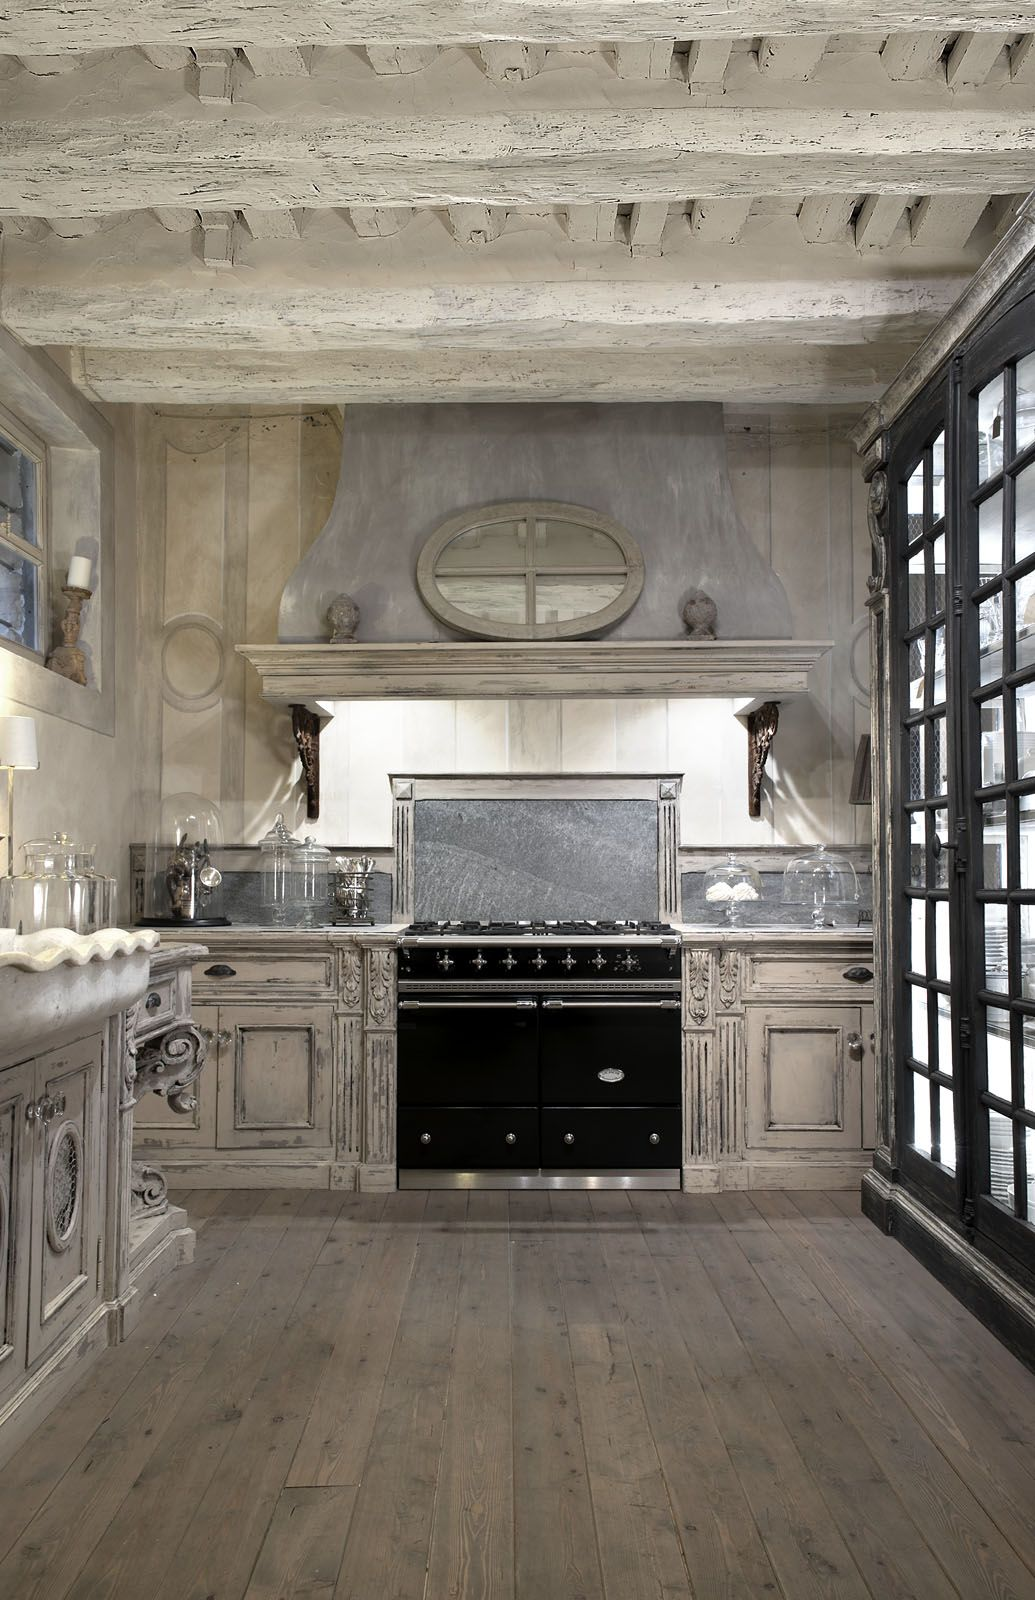 Best This Is One Of The Most Beautiful Kitchens I Have Ever 400 x 300